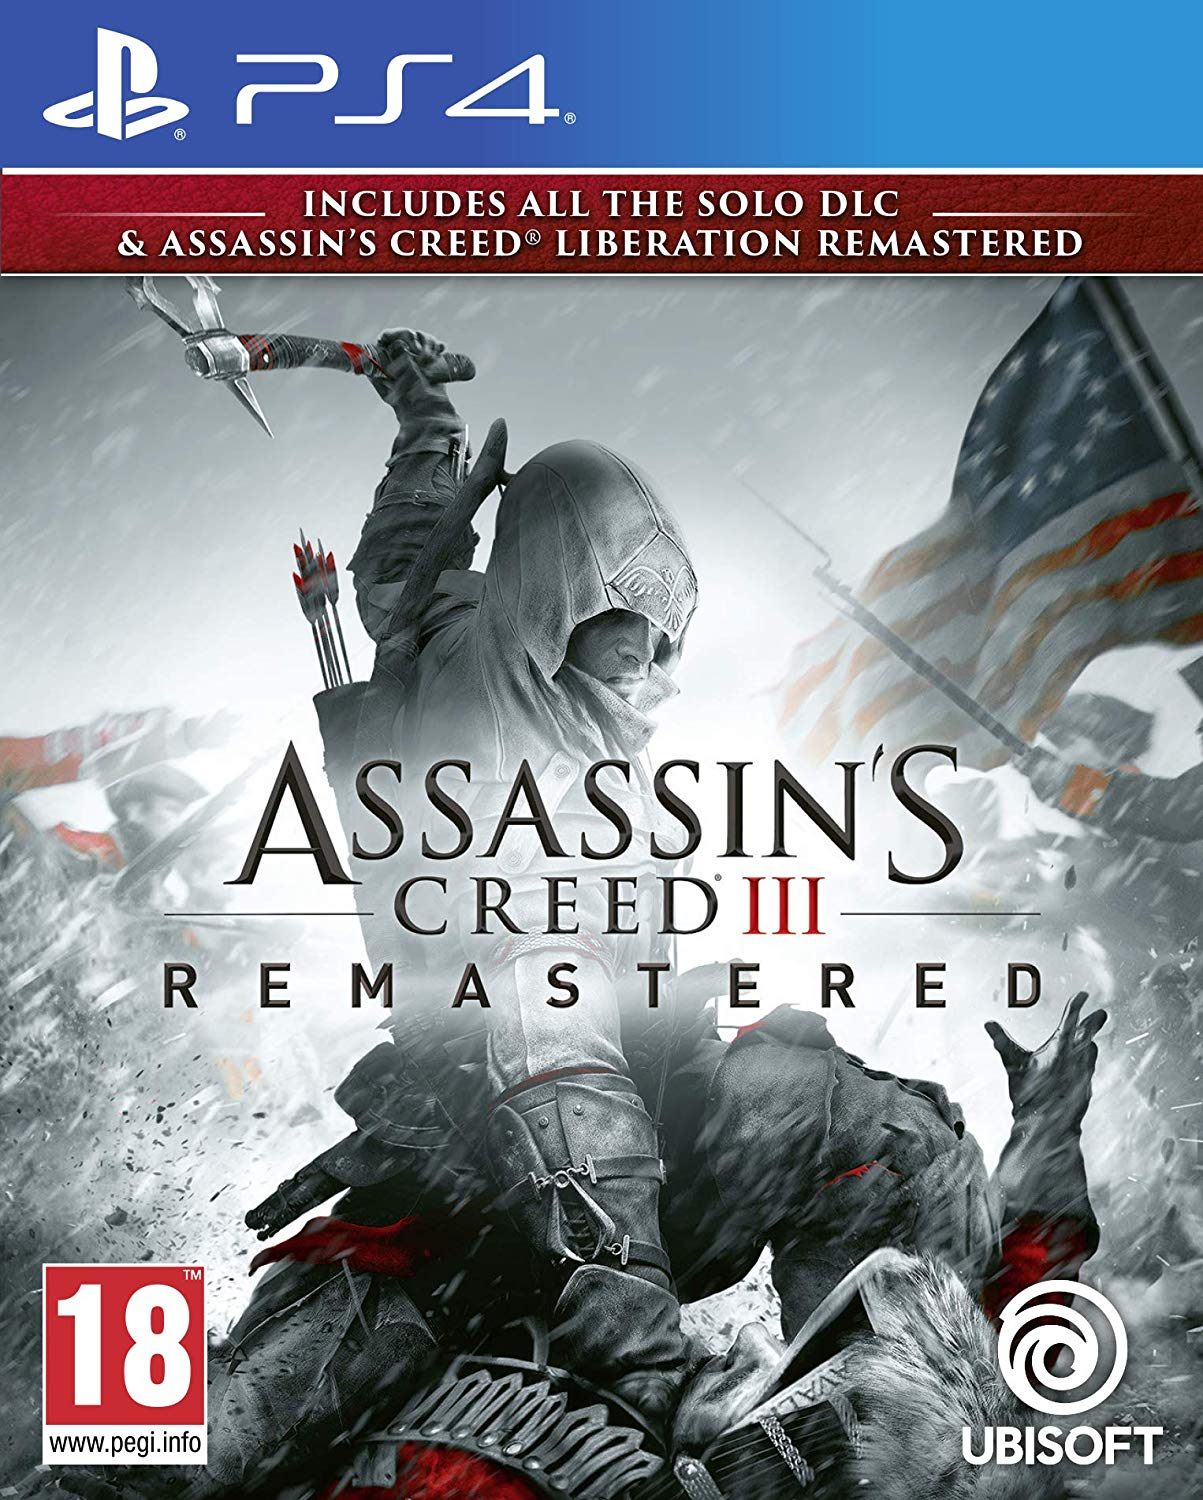 assassins creed 3 map